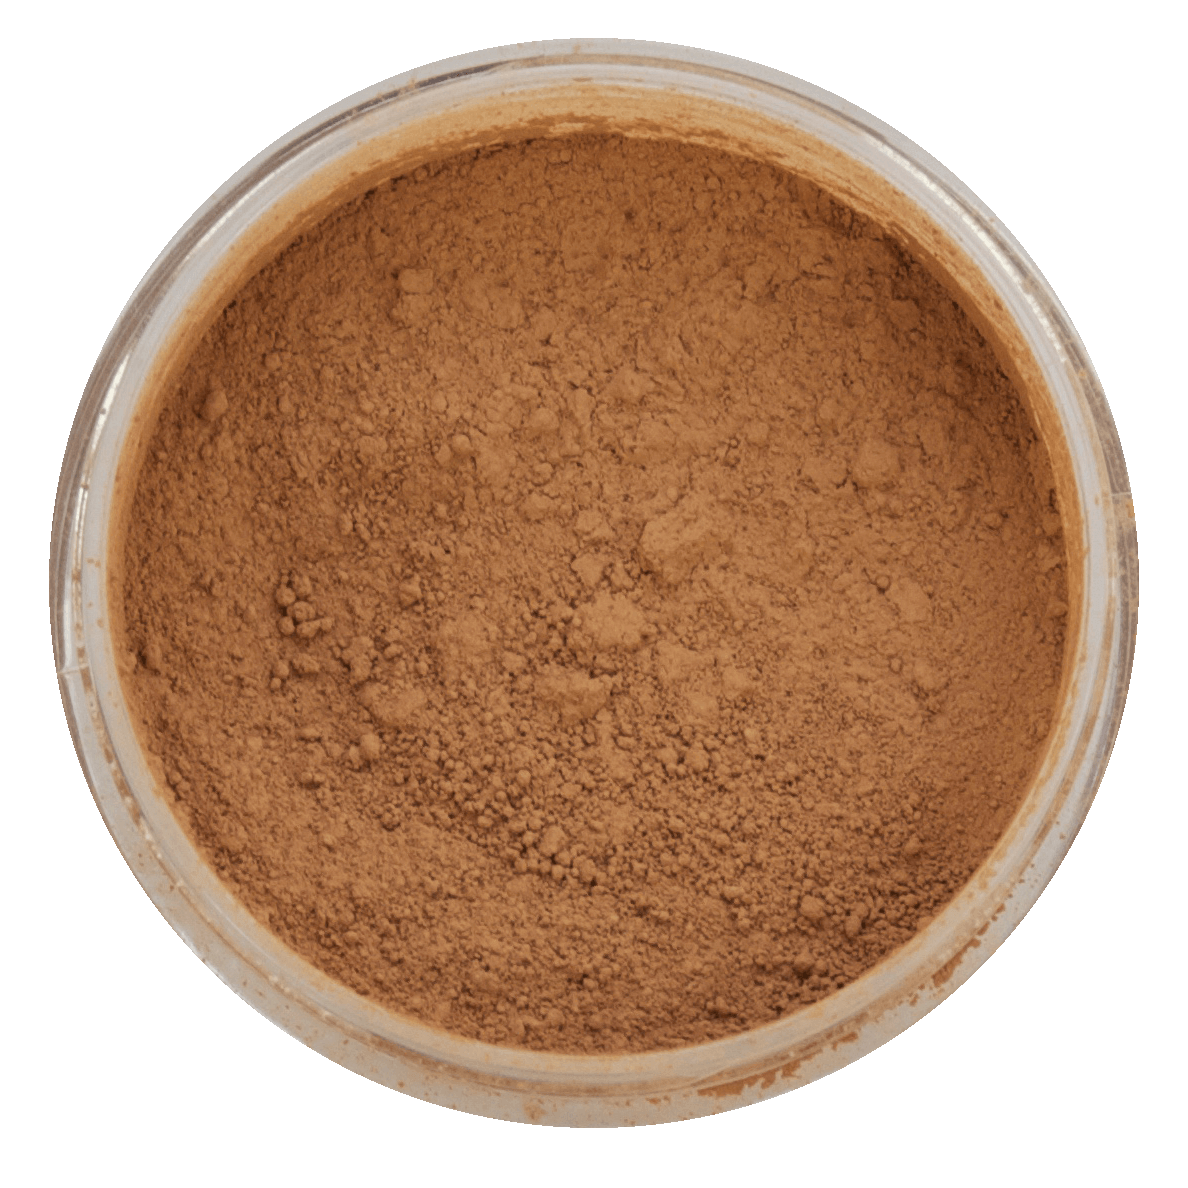 aura_beauty_flow_cosmetics__FLOW_COSMETICS_(天然亮澤礦物古銅粉)_FLOW_COSMETICS_Mineral_Powder_Bronzer_Sand